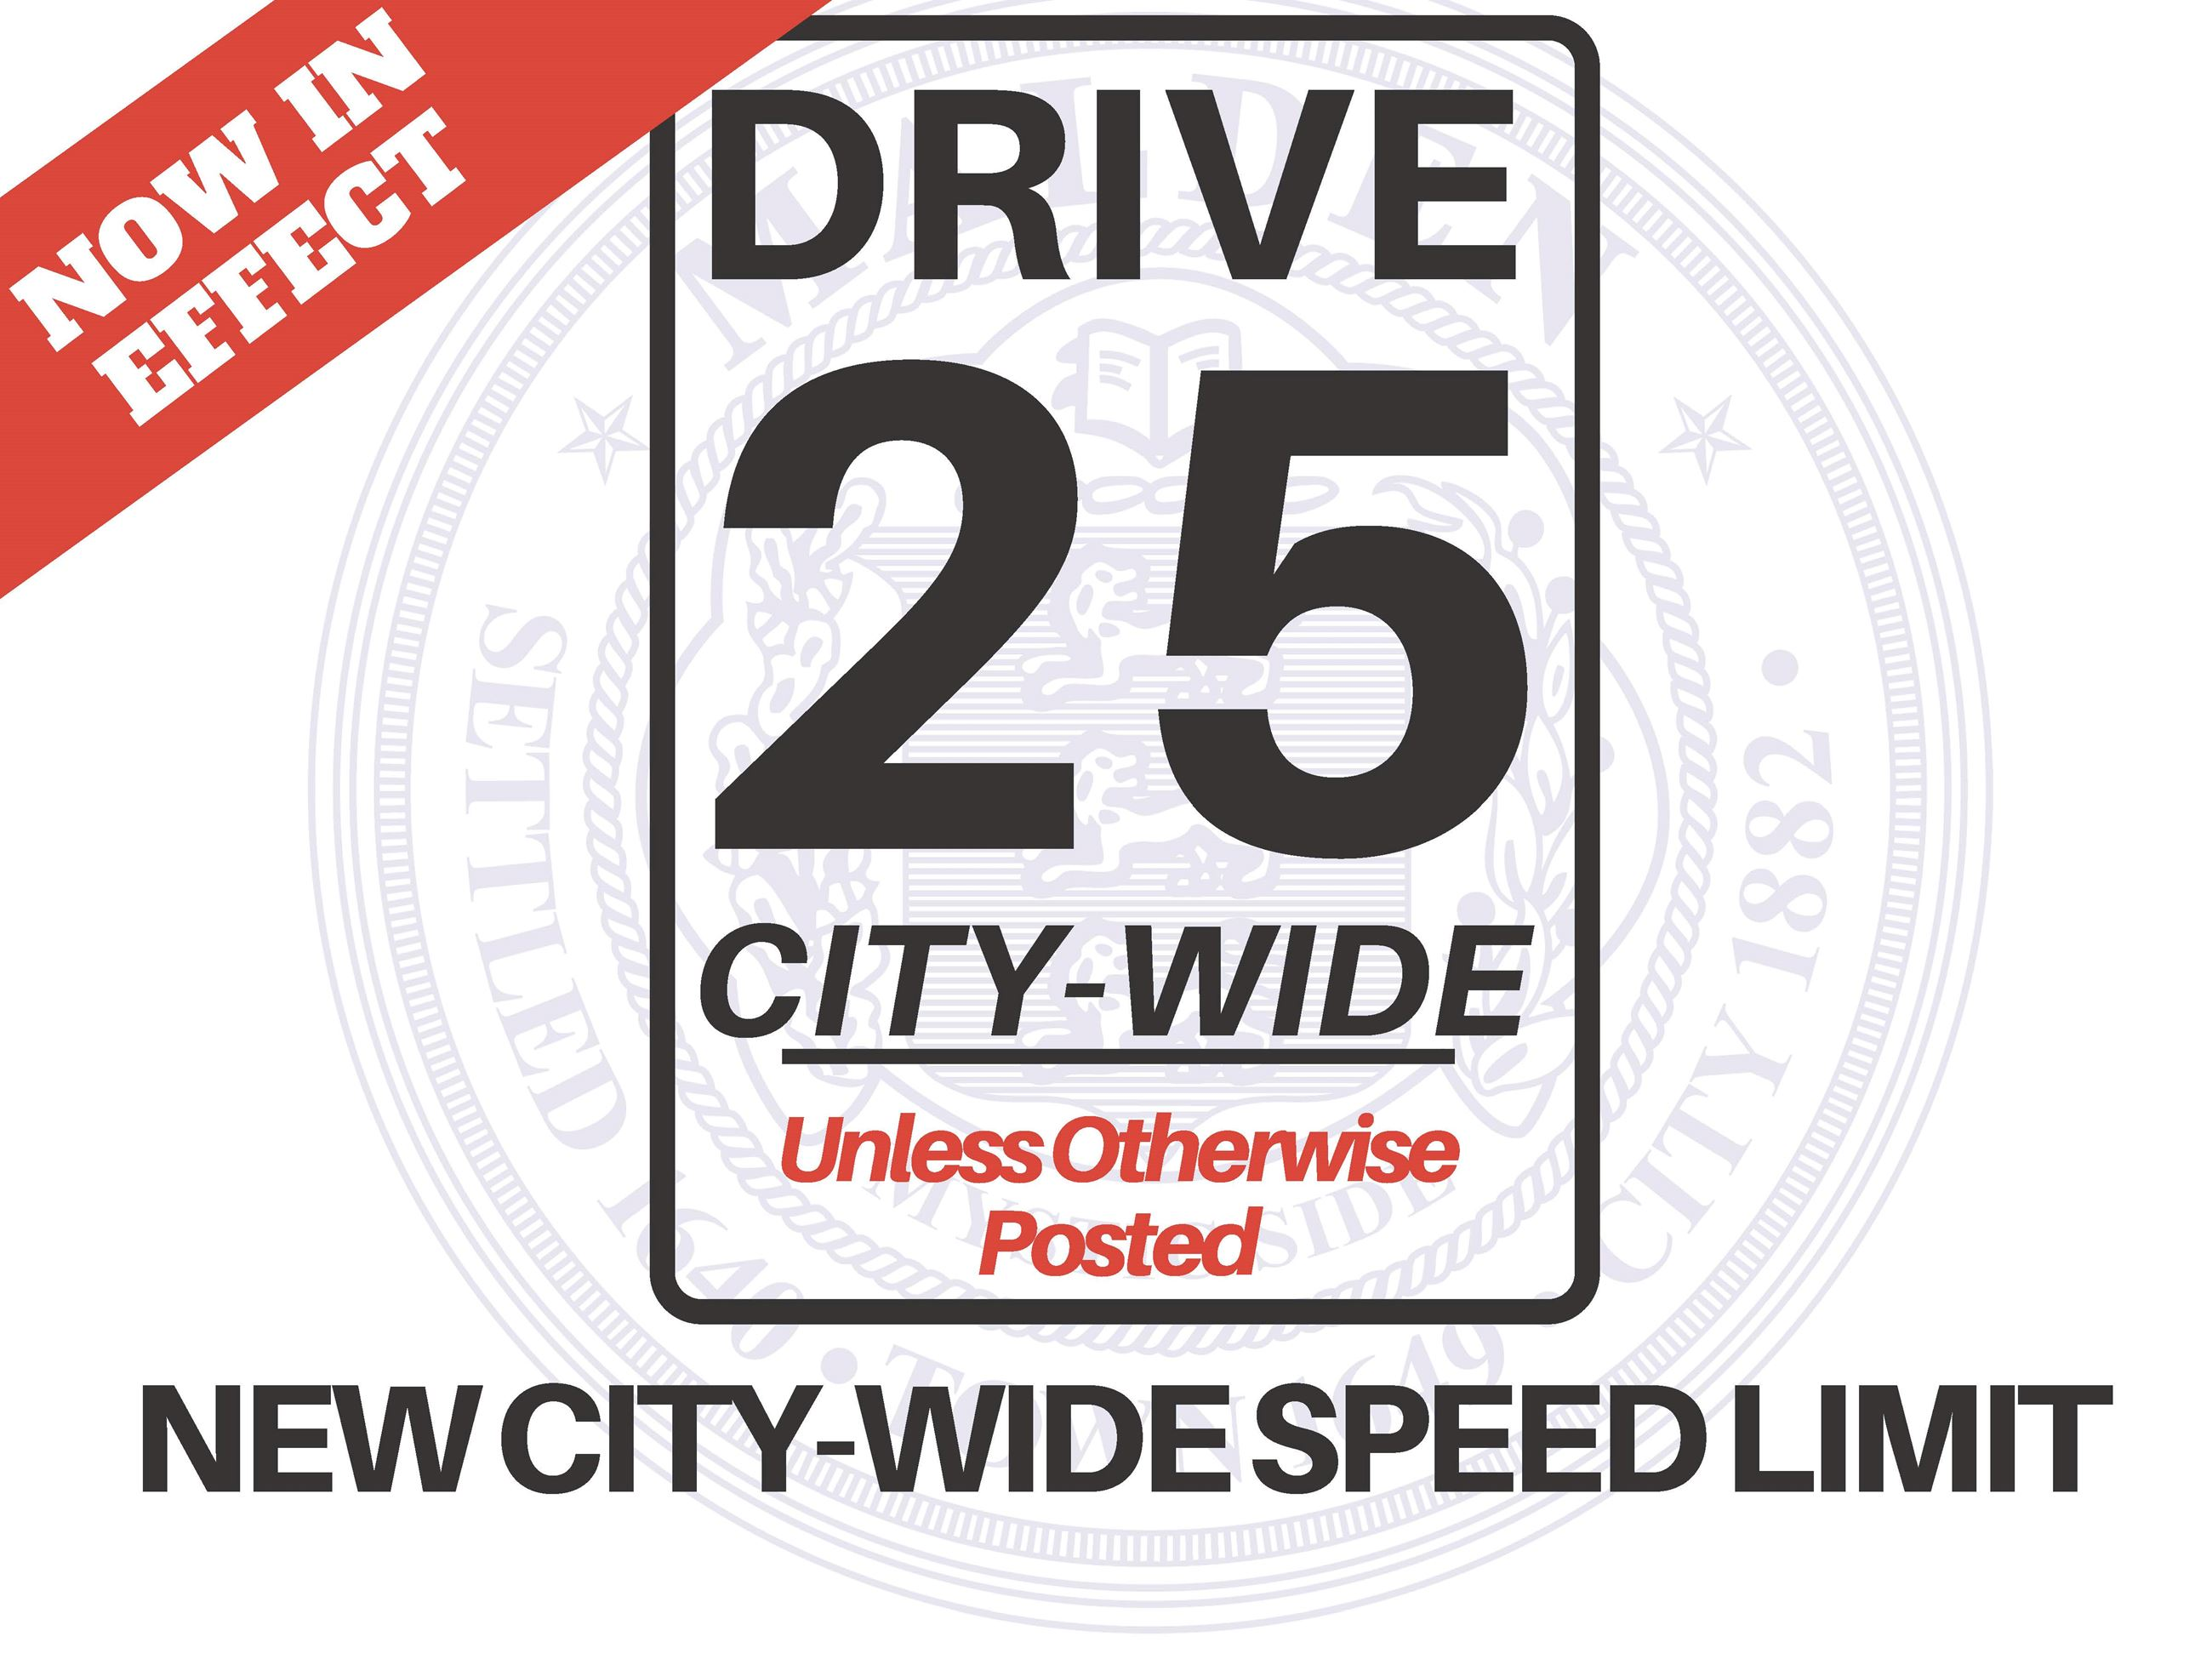 Drive 25 Lawn sign